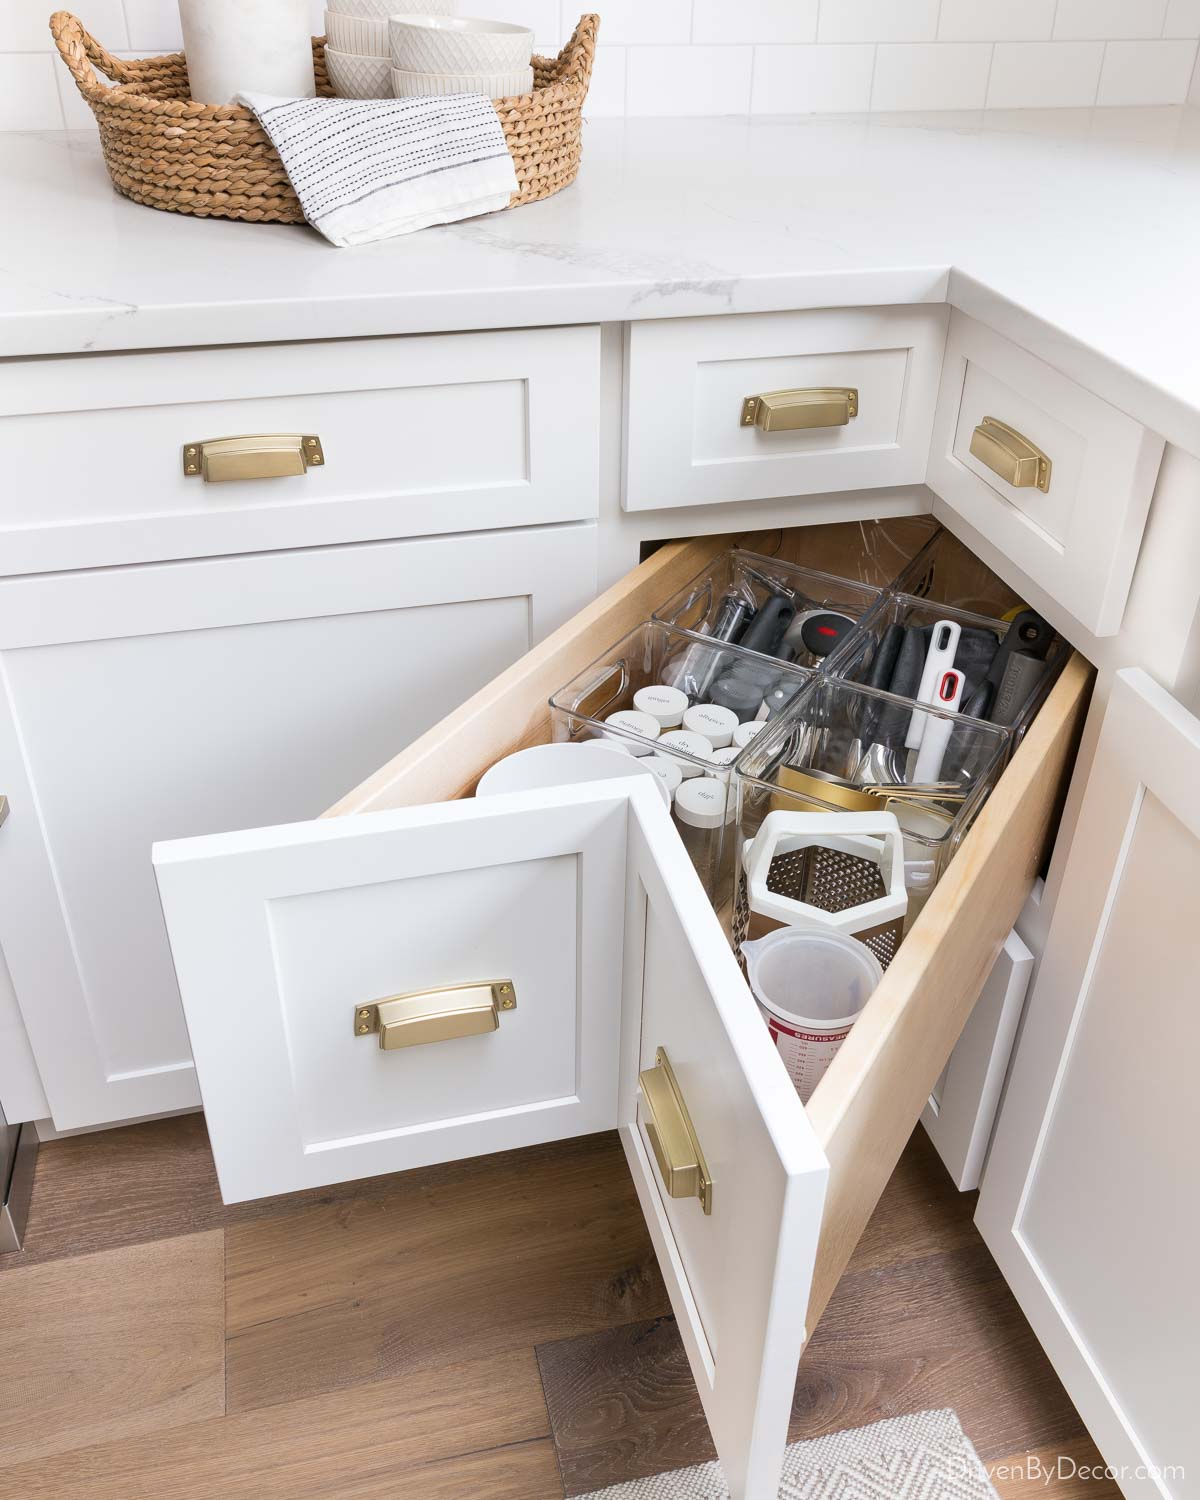 These deep bin kitchen drawer organizers create so much more usable space!